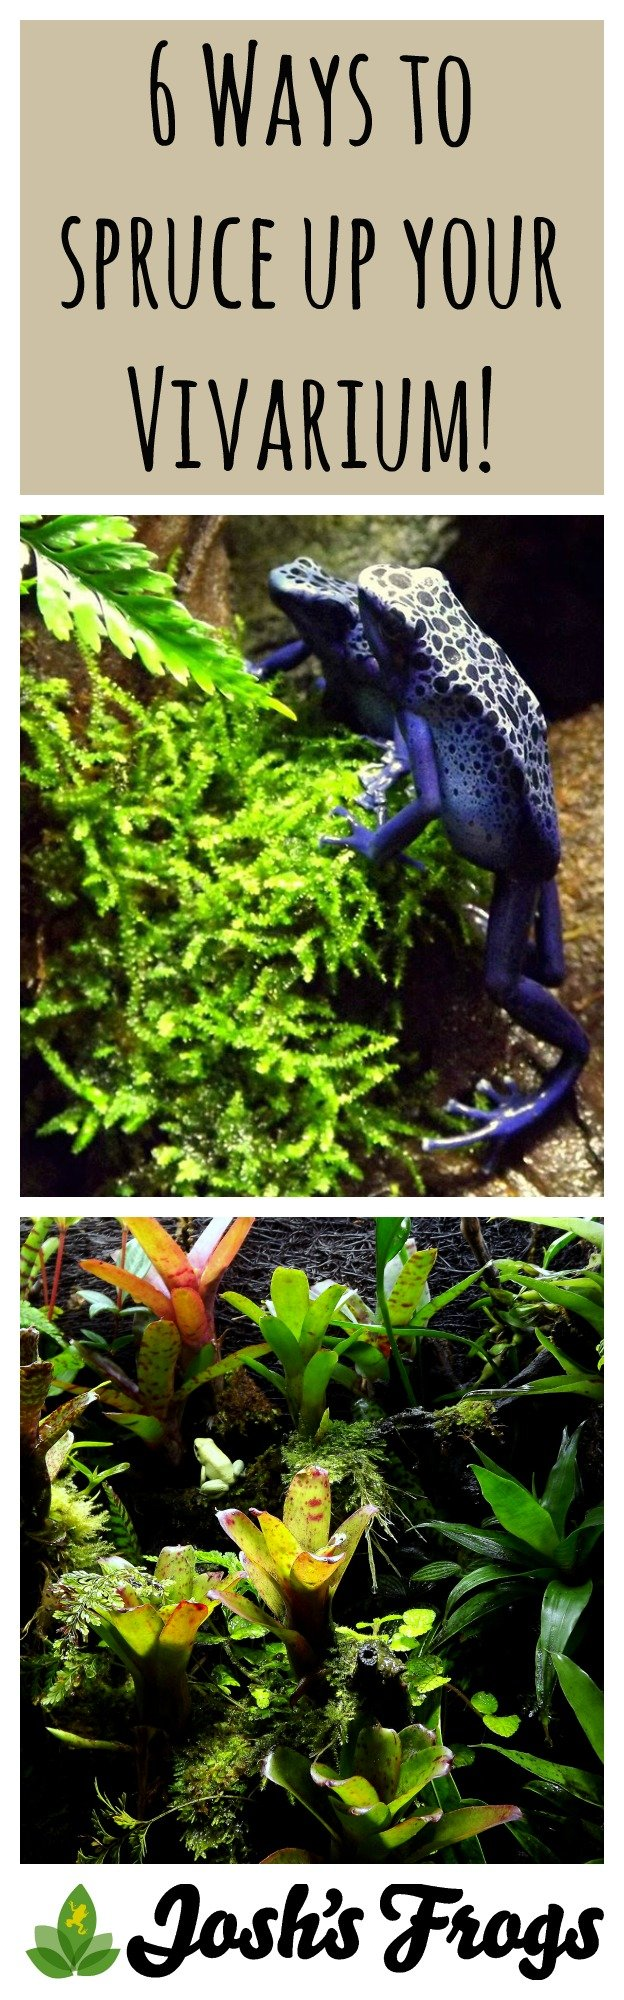 6 ways to spruce up your vivarium helping you connect with nature josh 39 s frogs - Six ways to spruce up your balcony ...